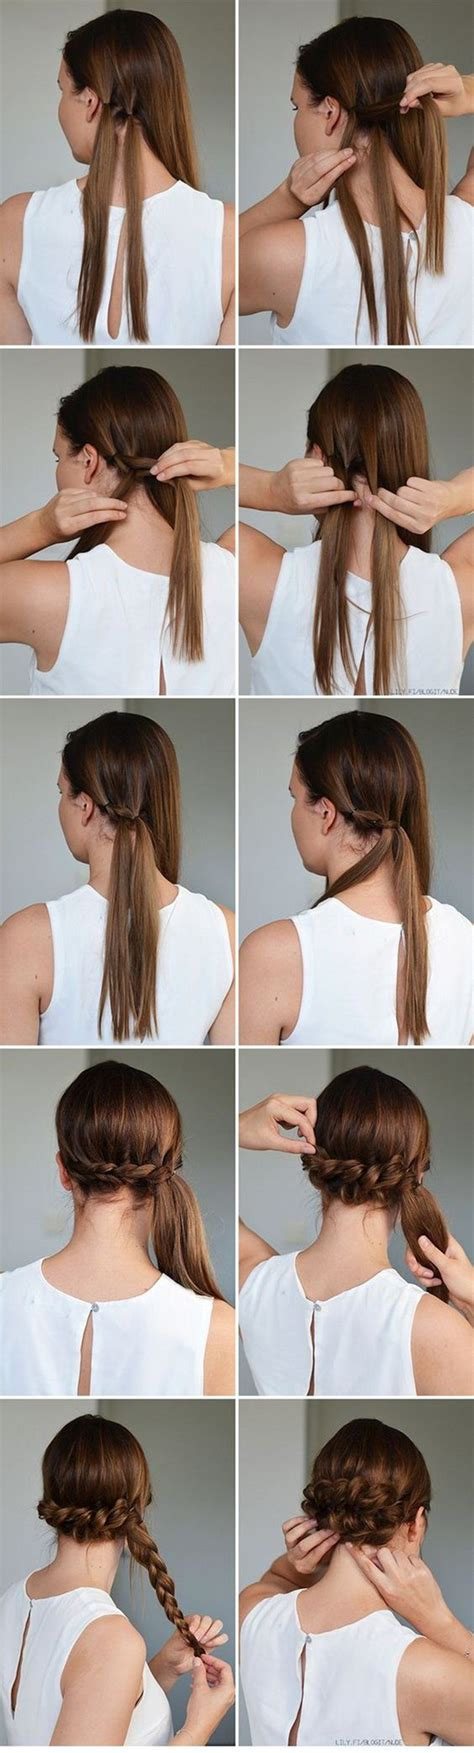 easy hairstyles for school trip 40 easy hairstyles for schools to try in 2016